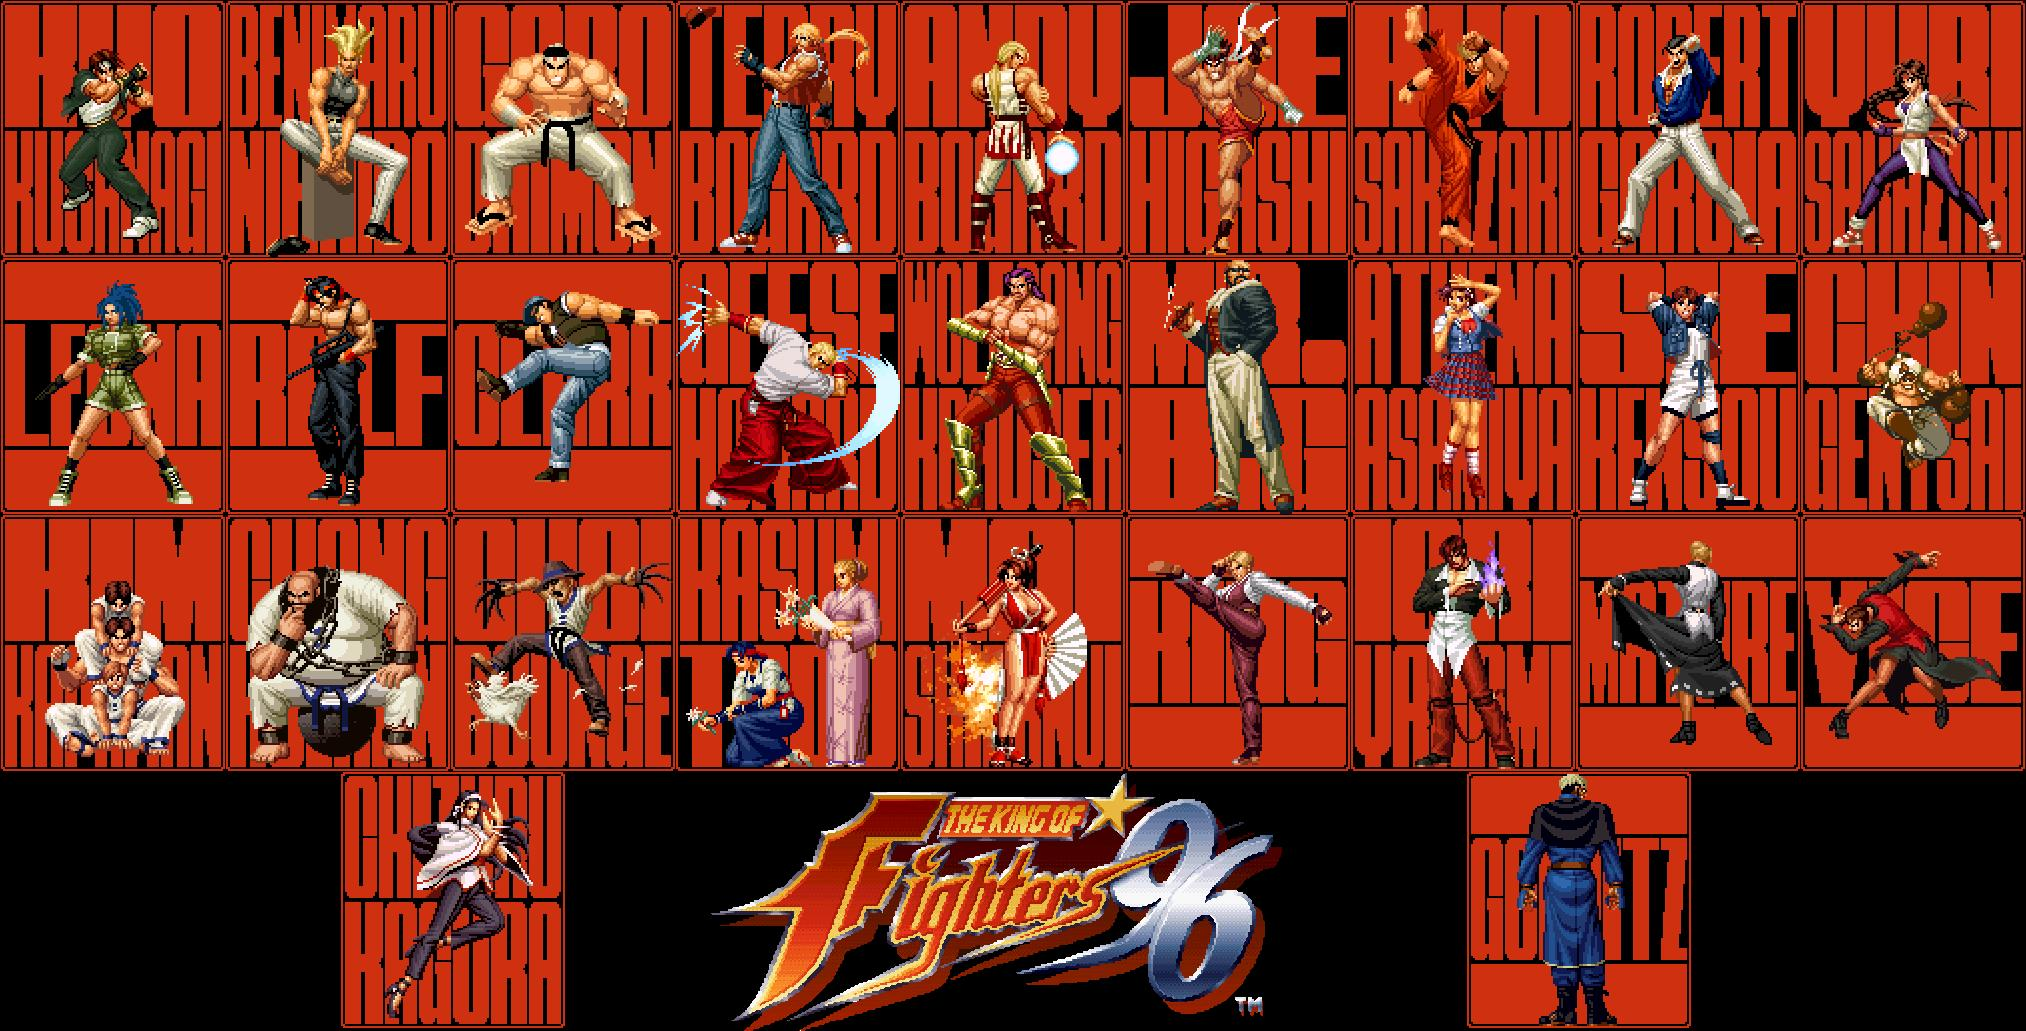 Mfg 1 1 Kof Orochi Saga Screenpacks Portraits Rips Updated